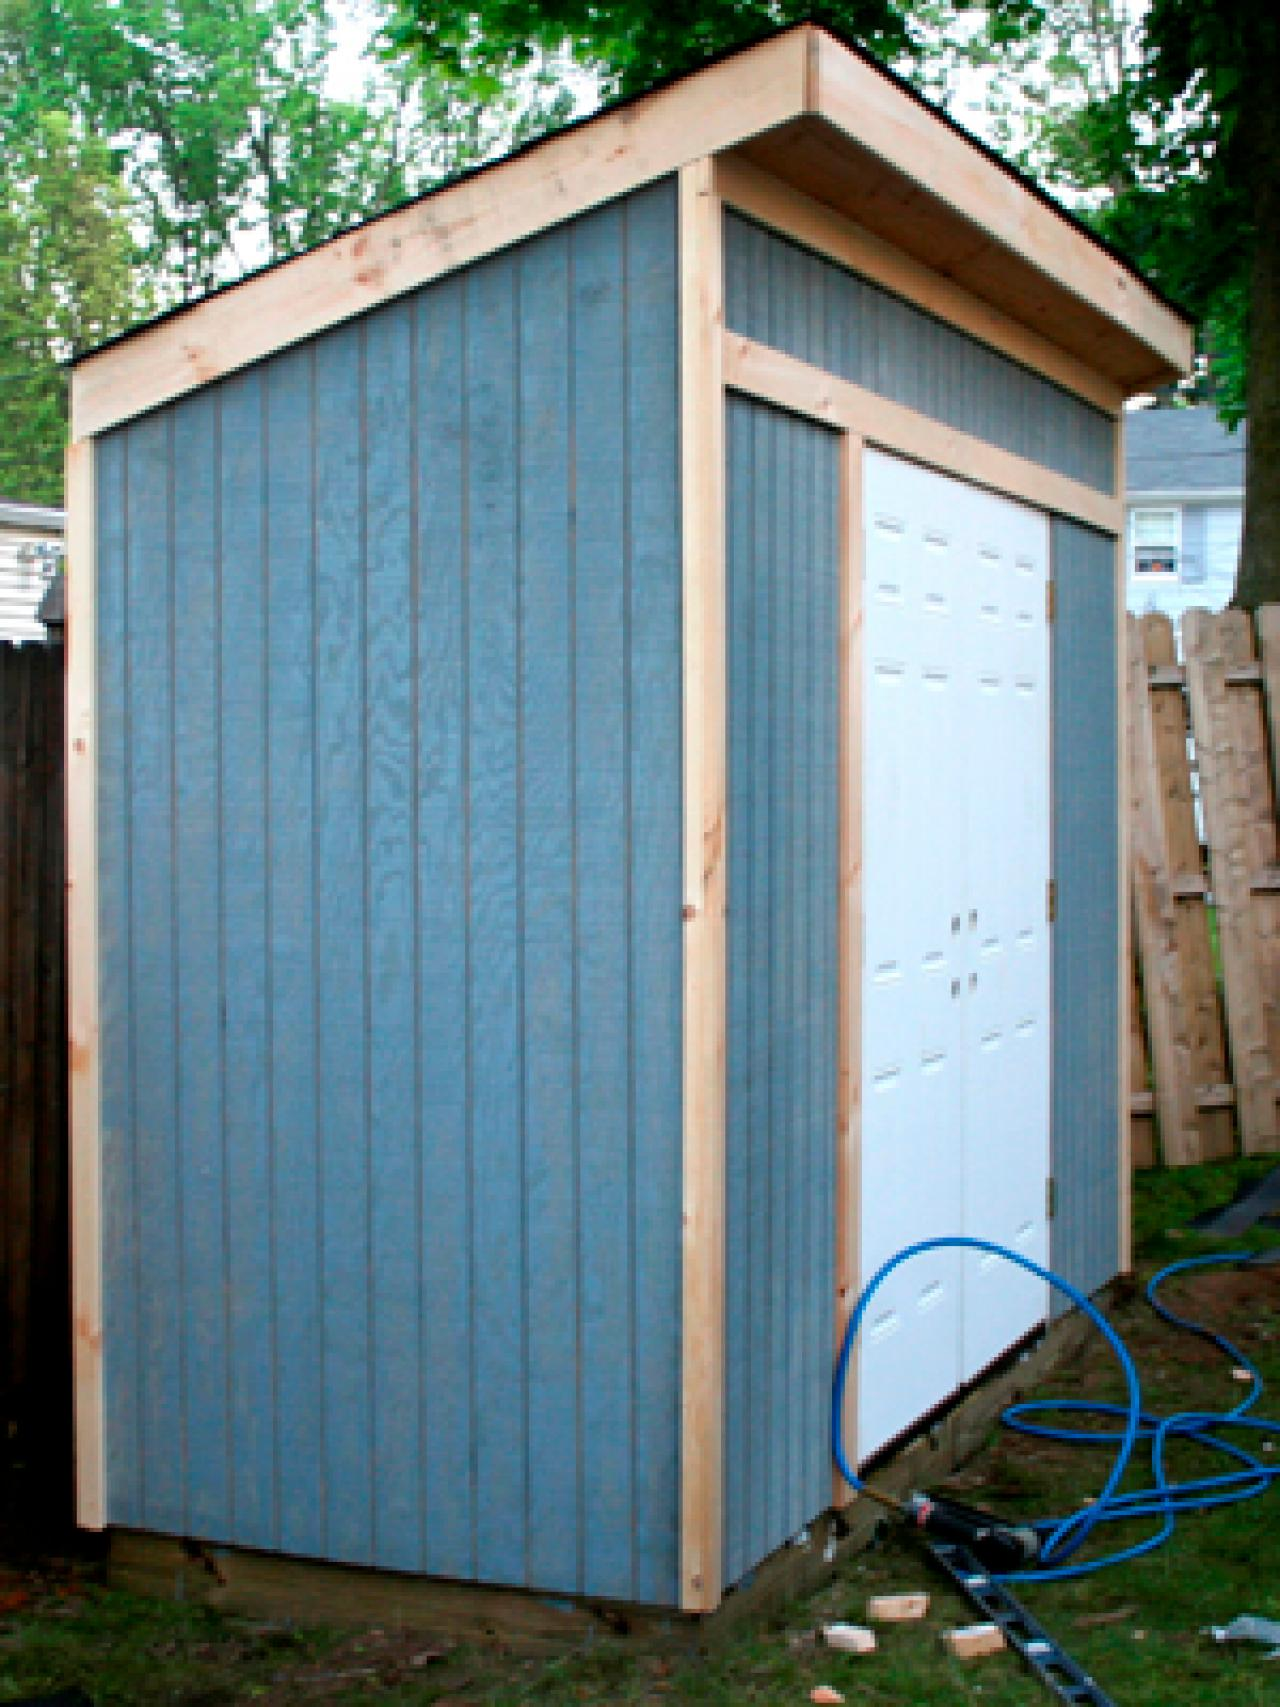 How to build a storage shed for garden tools hgtv for Outdoor garden shed